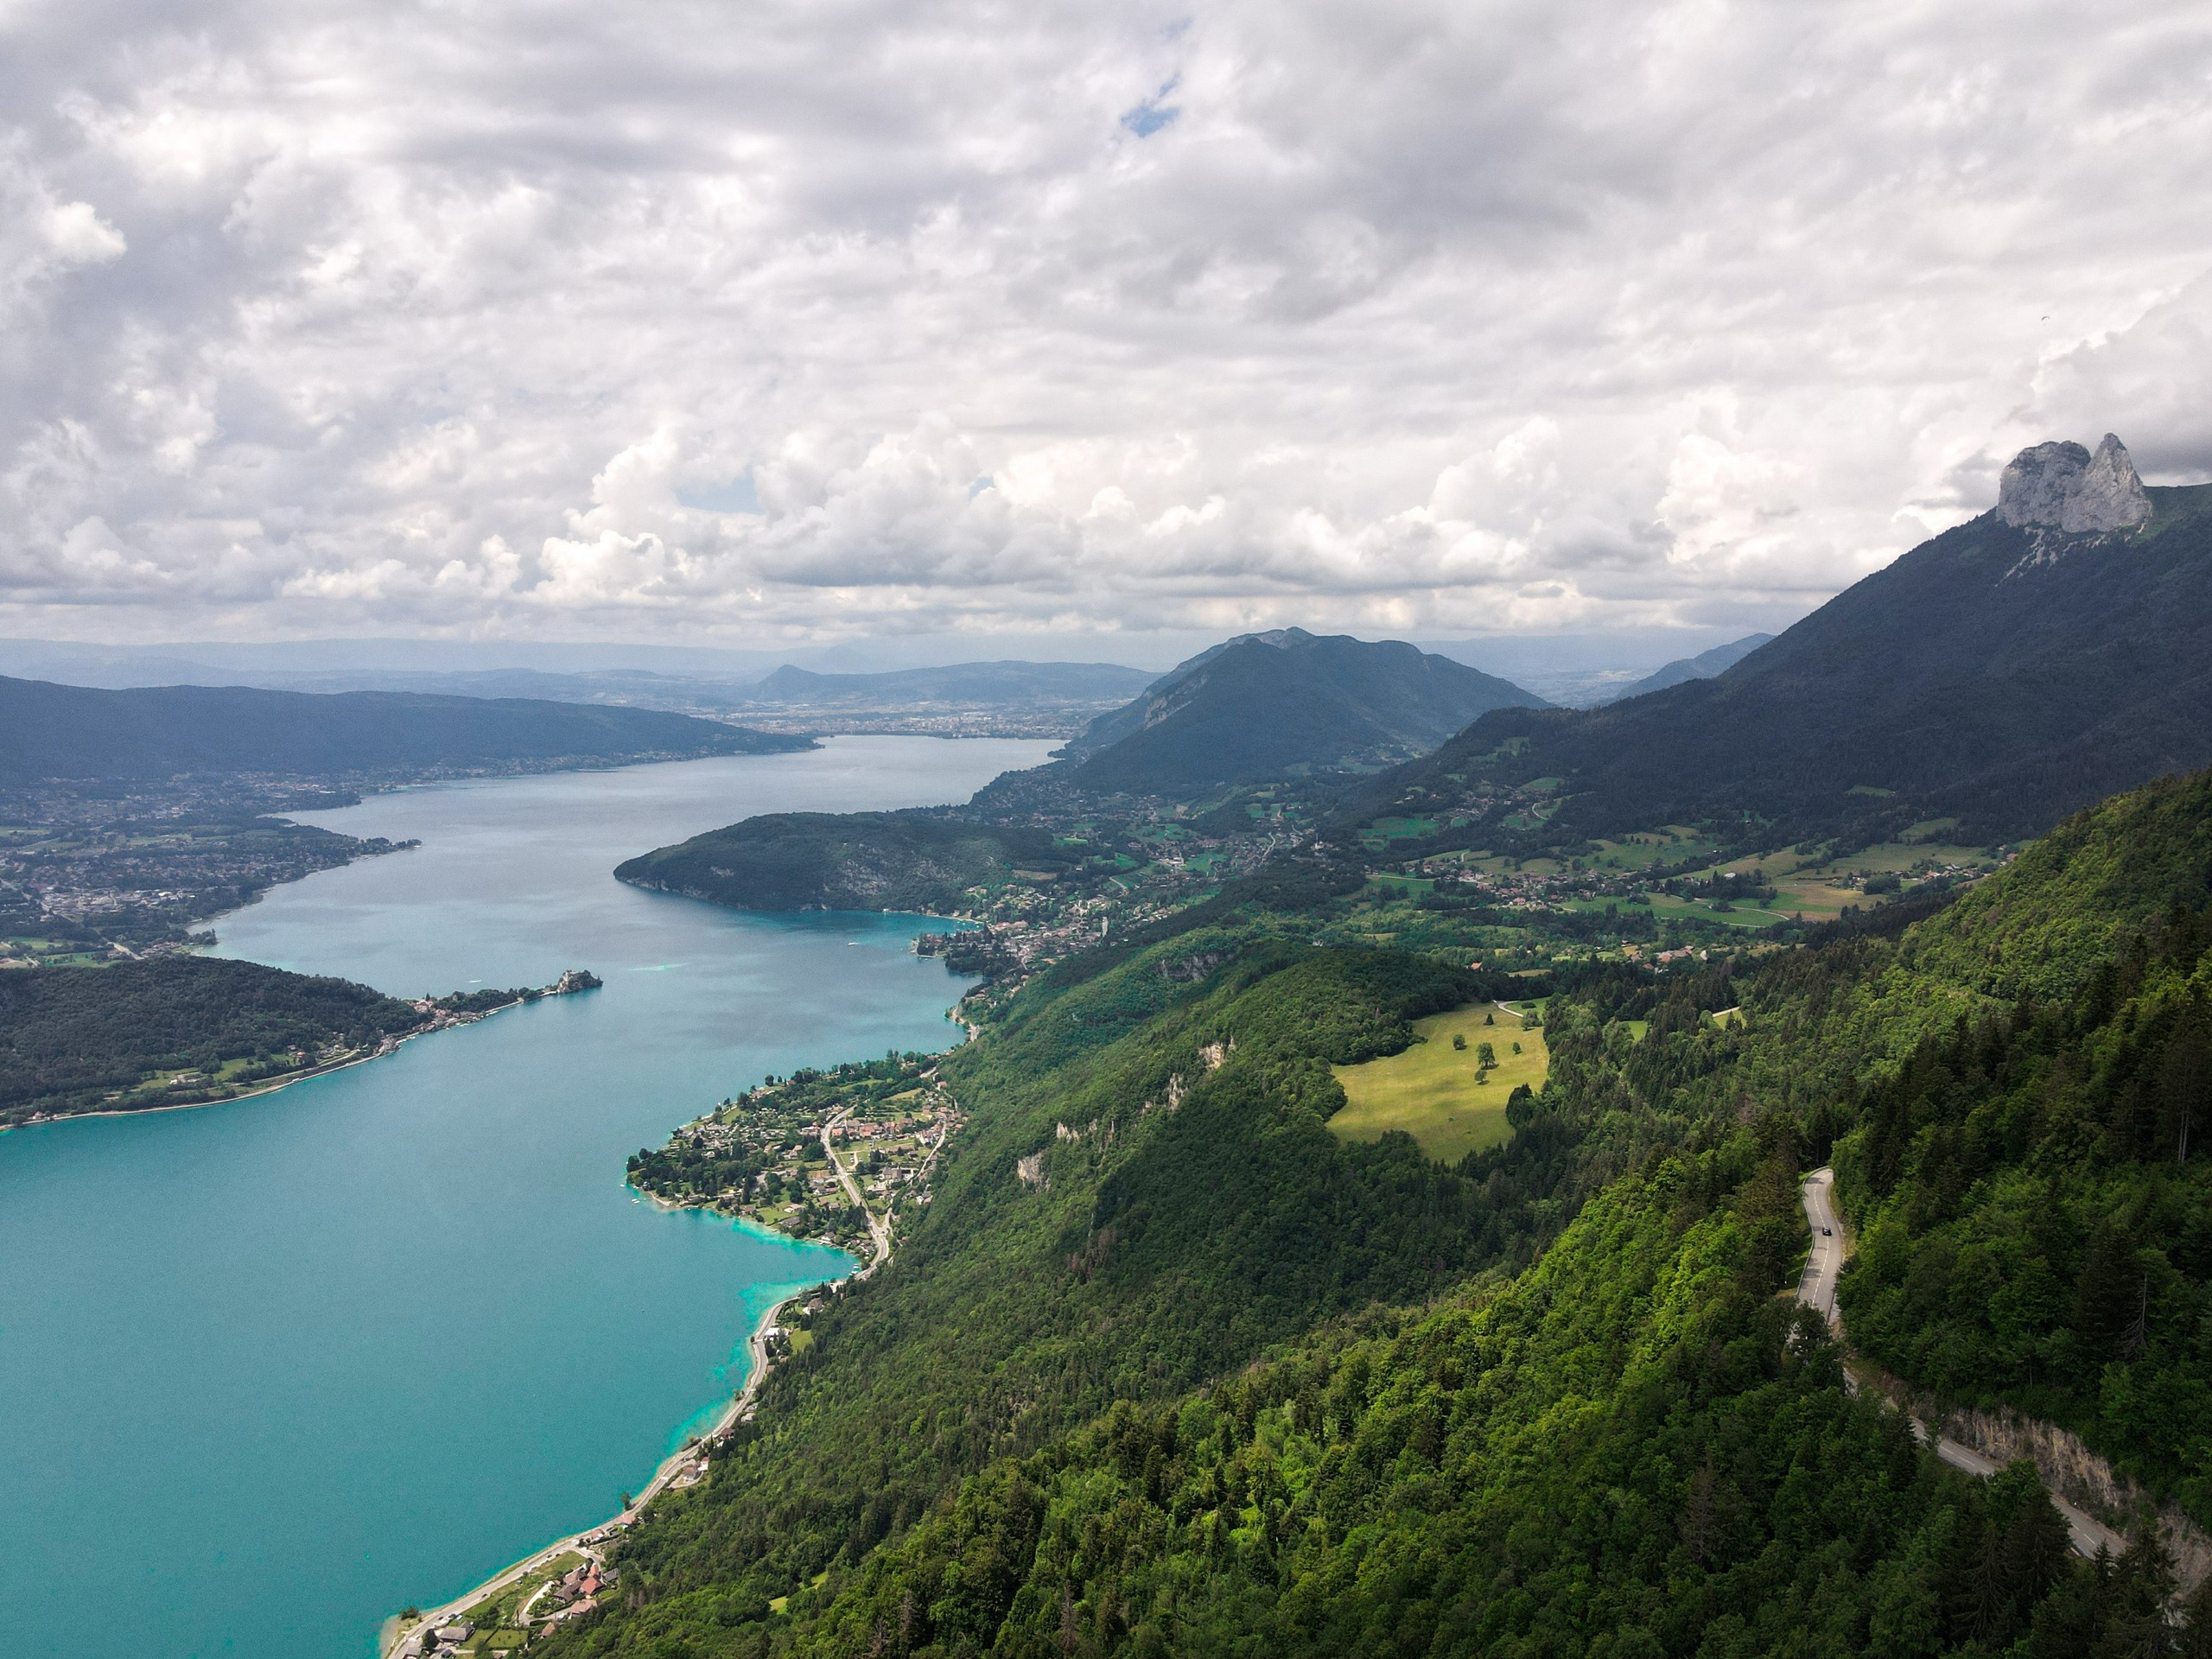 Looking at Annecy Lake from the above